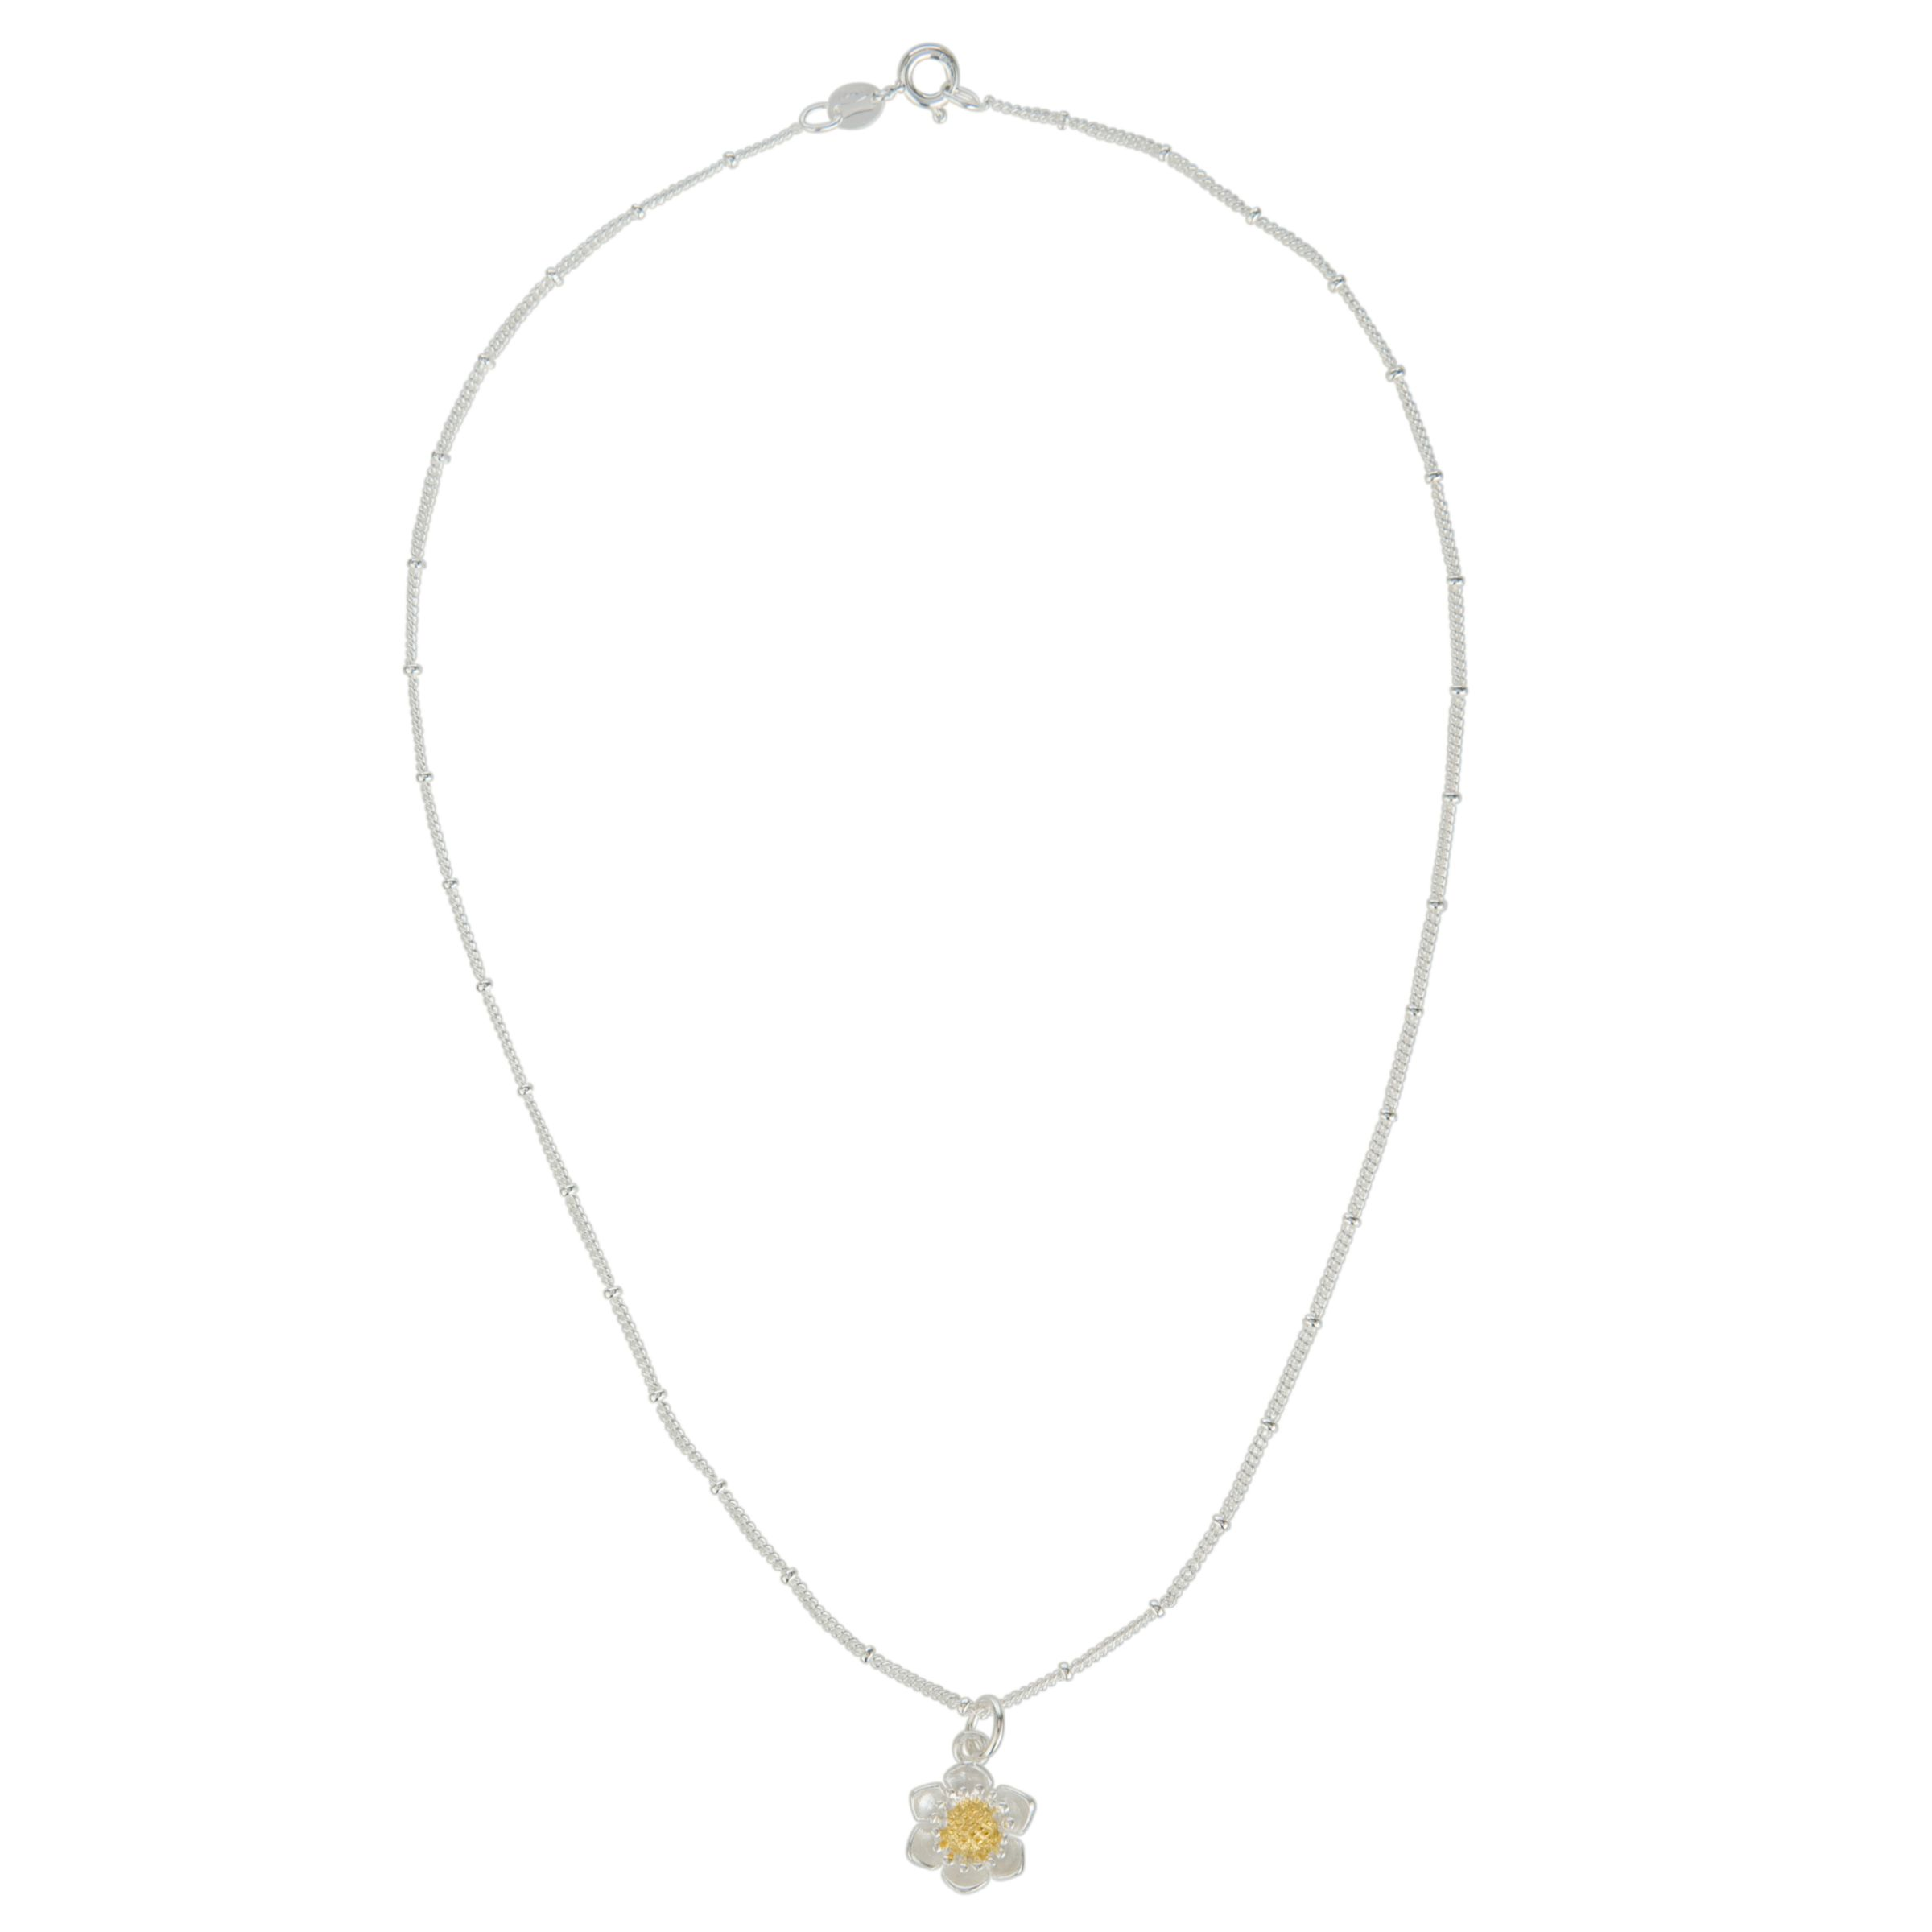 Martick Mini Gold Plated Daisy Pendent Necklace, Gold/Silver